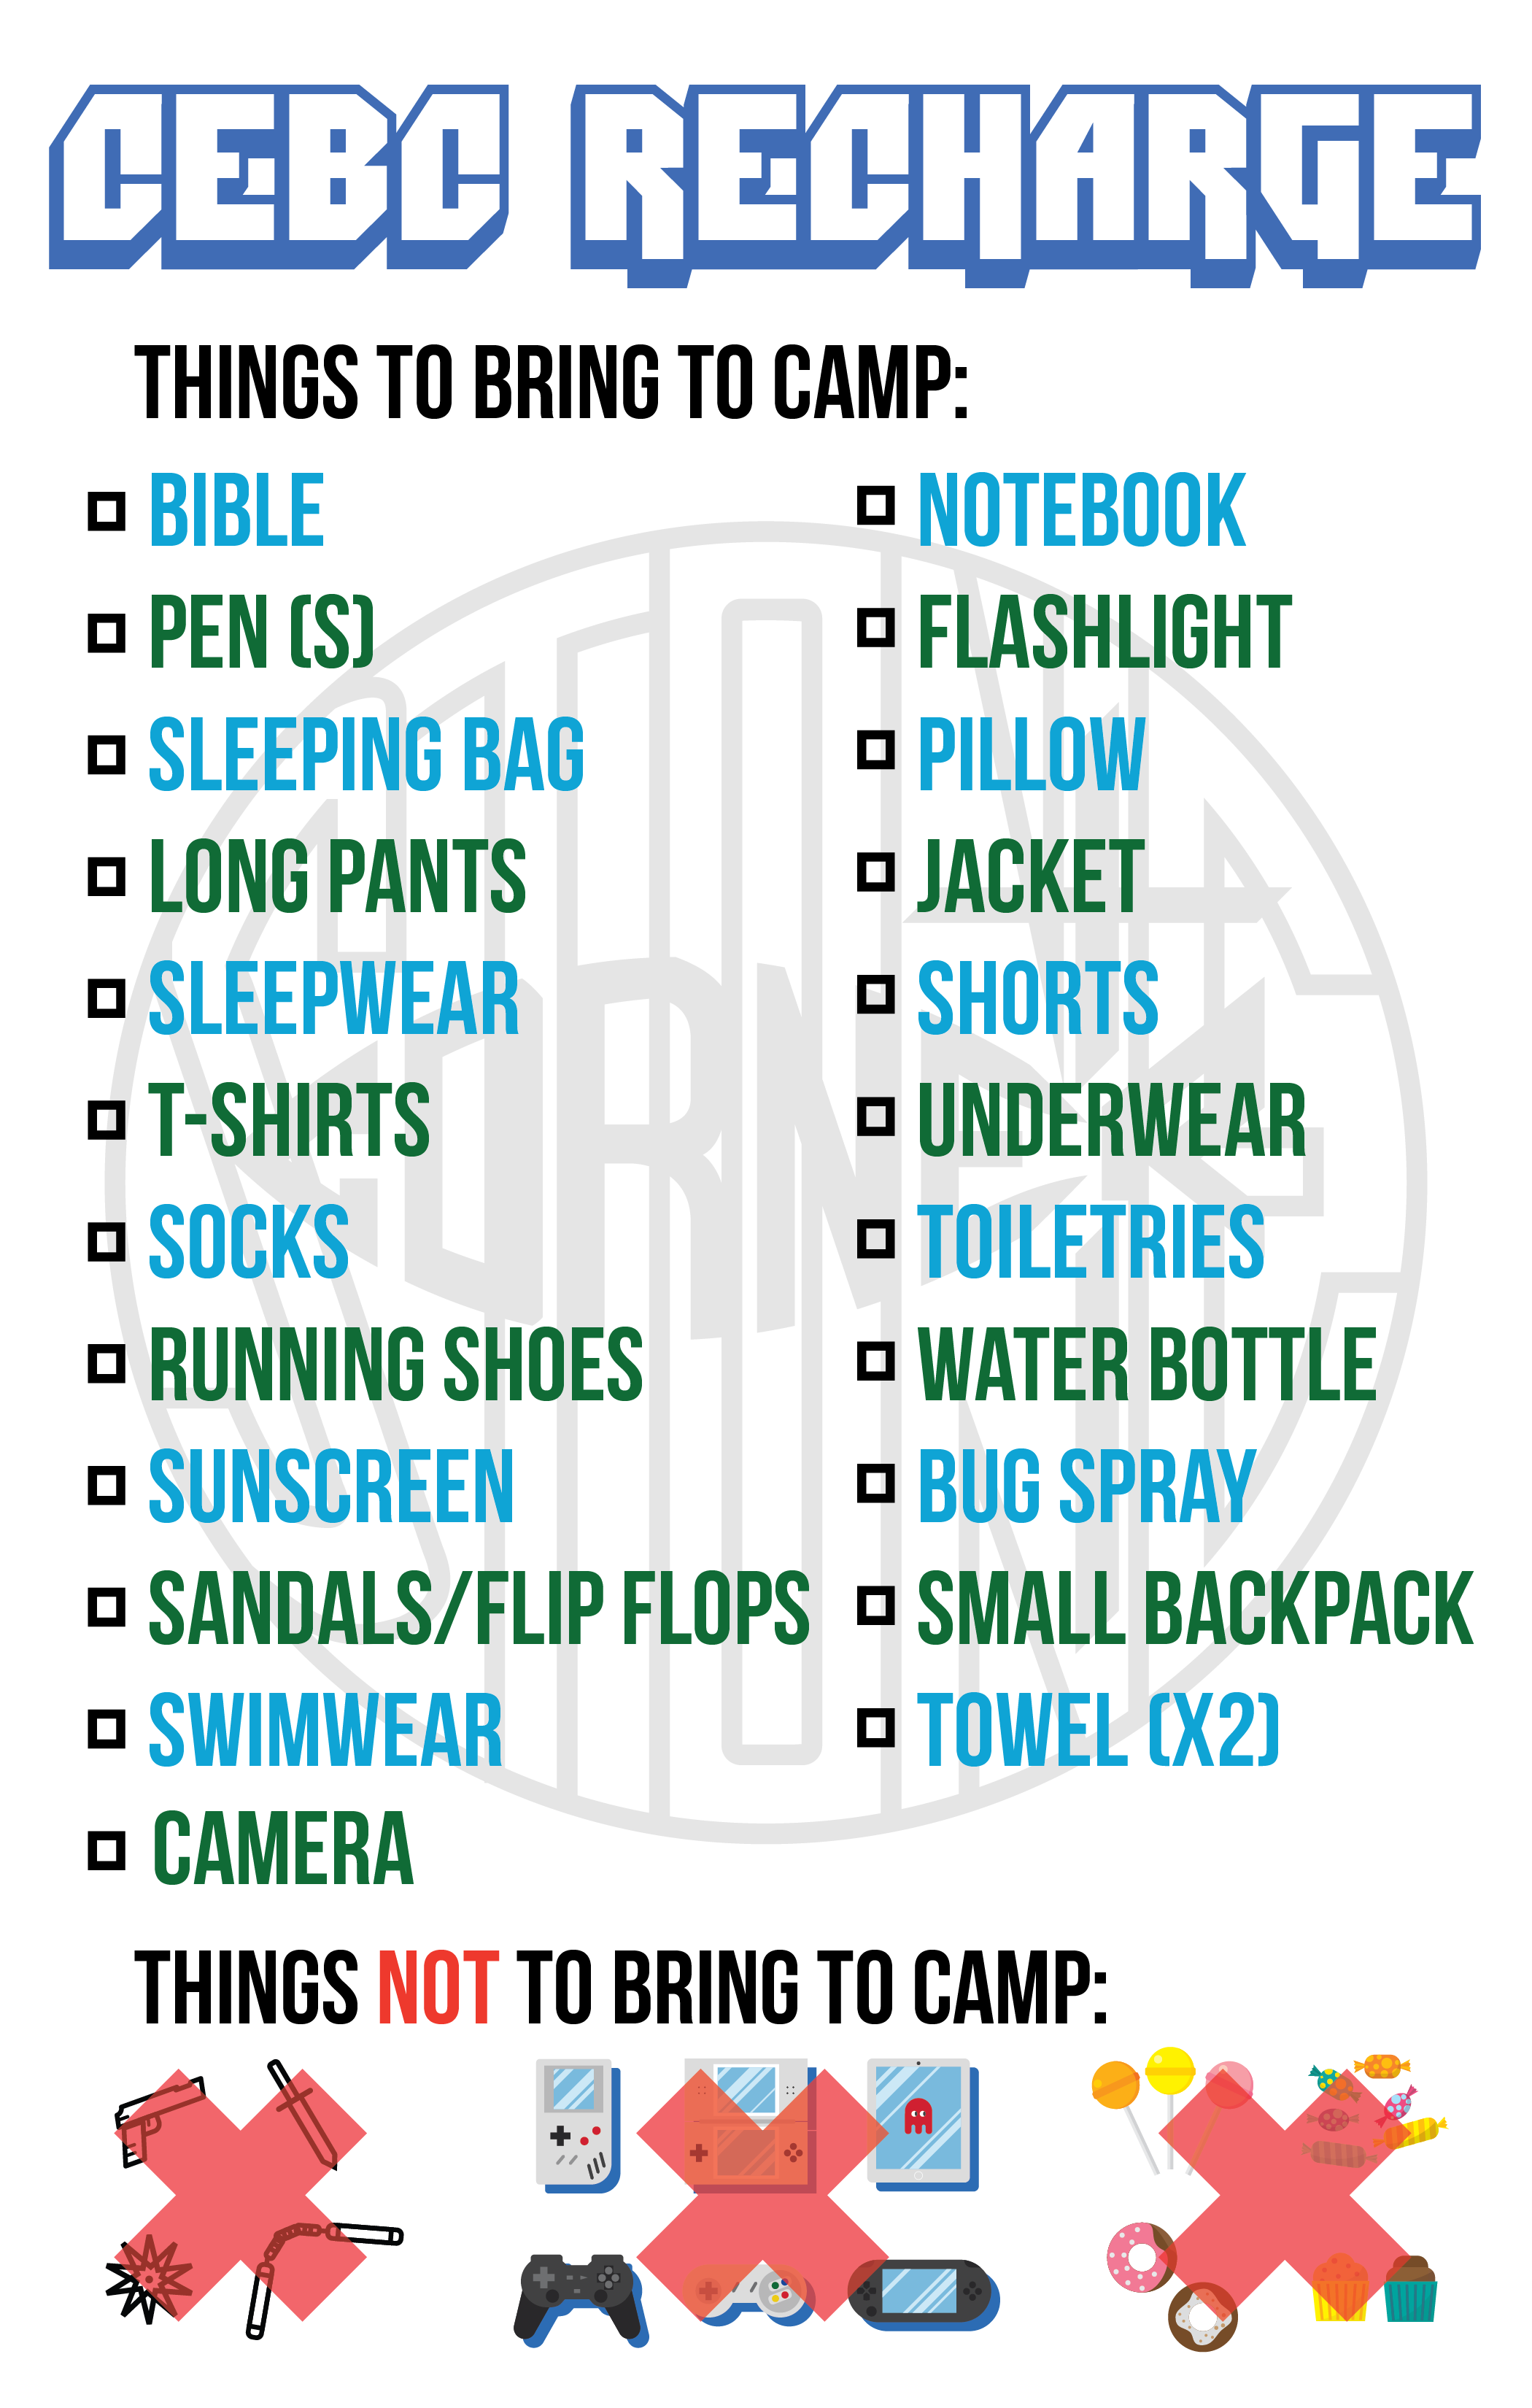 CEBC Recharge Things to bring Checklist-01.png